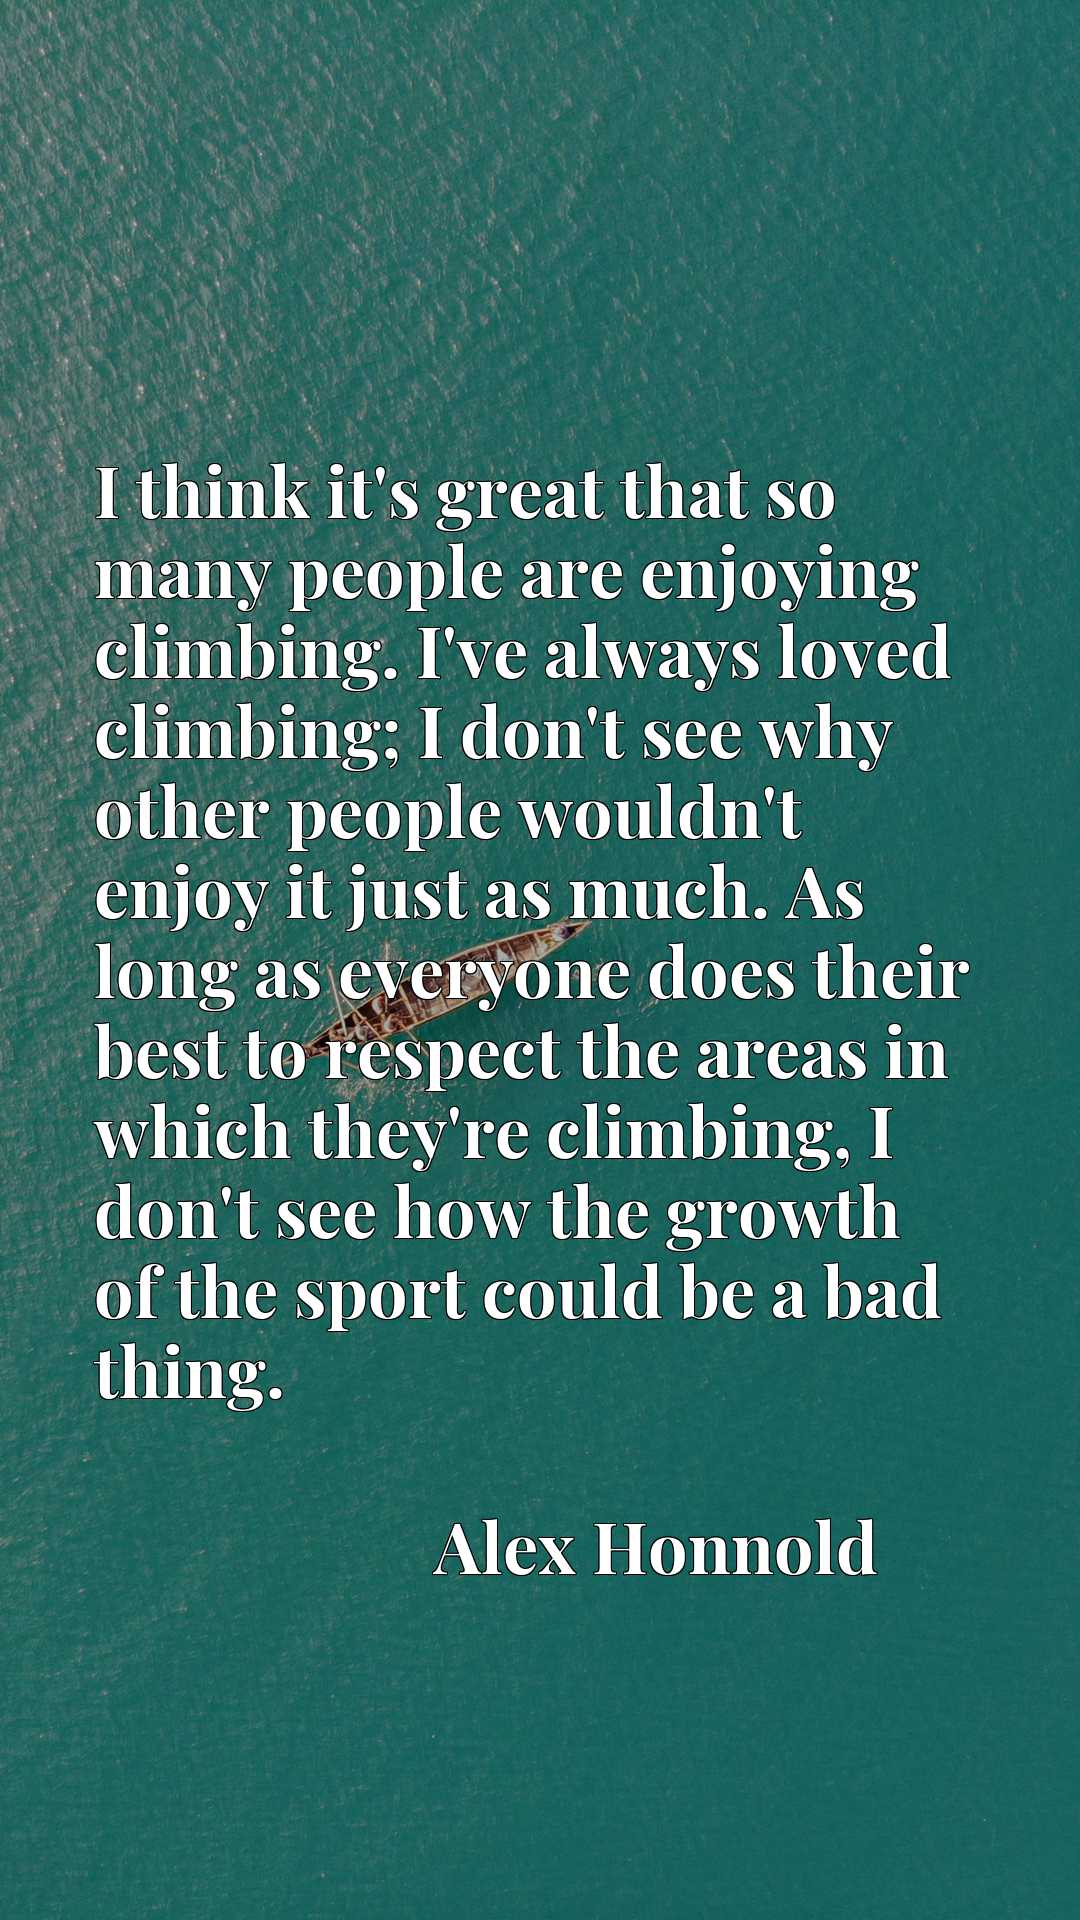 I think it's great that so many people are enjoying climbing. I've always loved climbing; I don't see why other people wouldn't enjoy it just as much. As long as everyone does their best to respect the areas in which they're climbing, I don't see how the growth of the sport could be a bad thing.